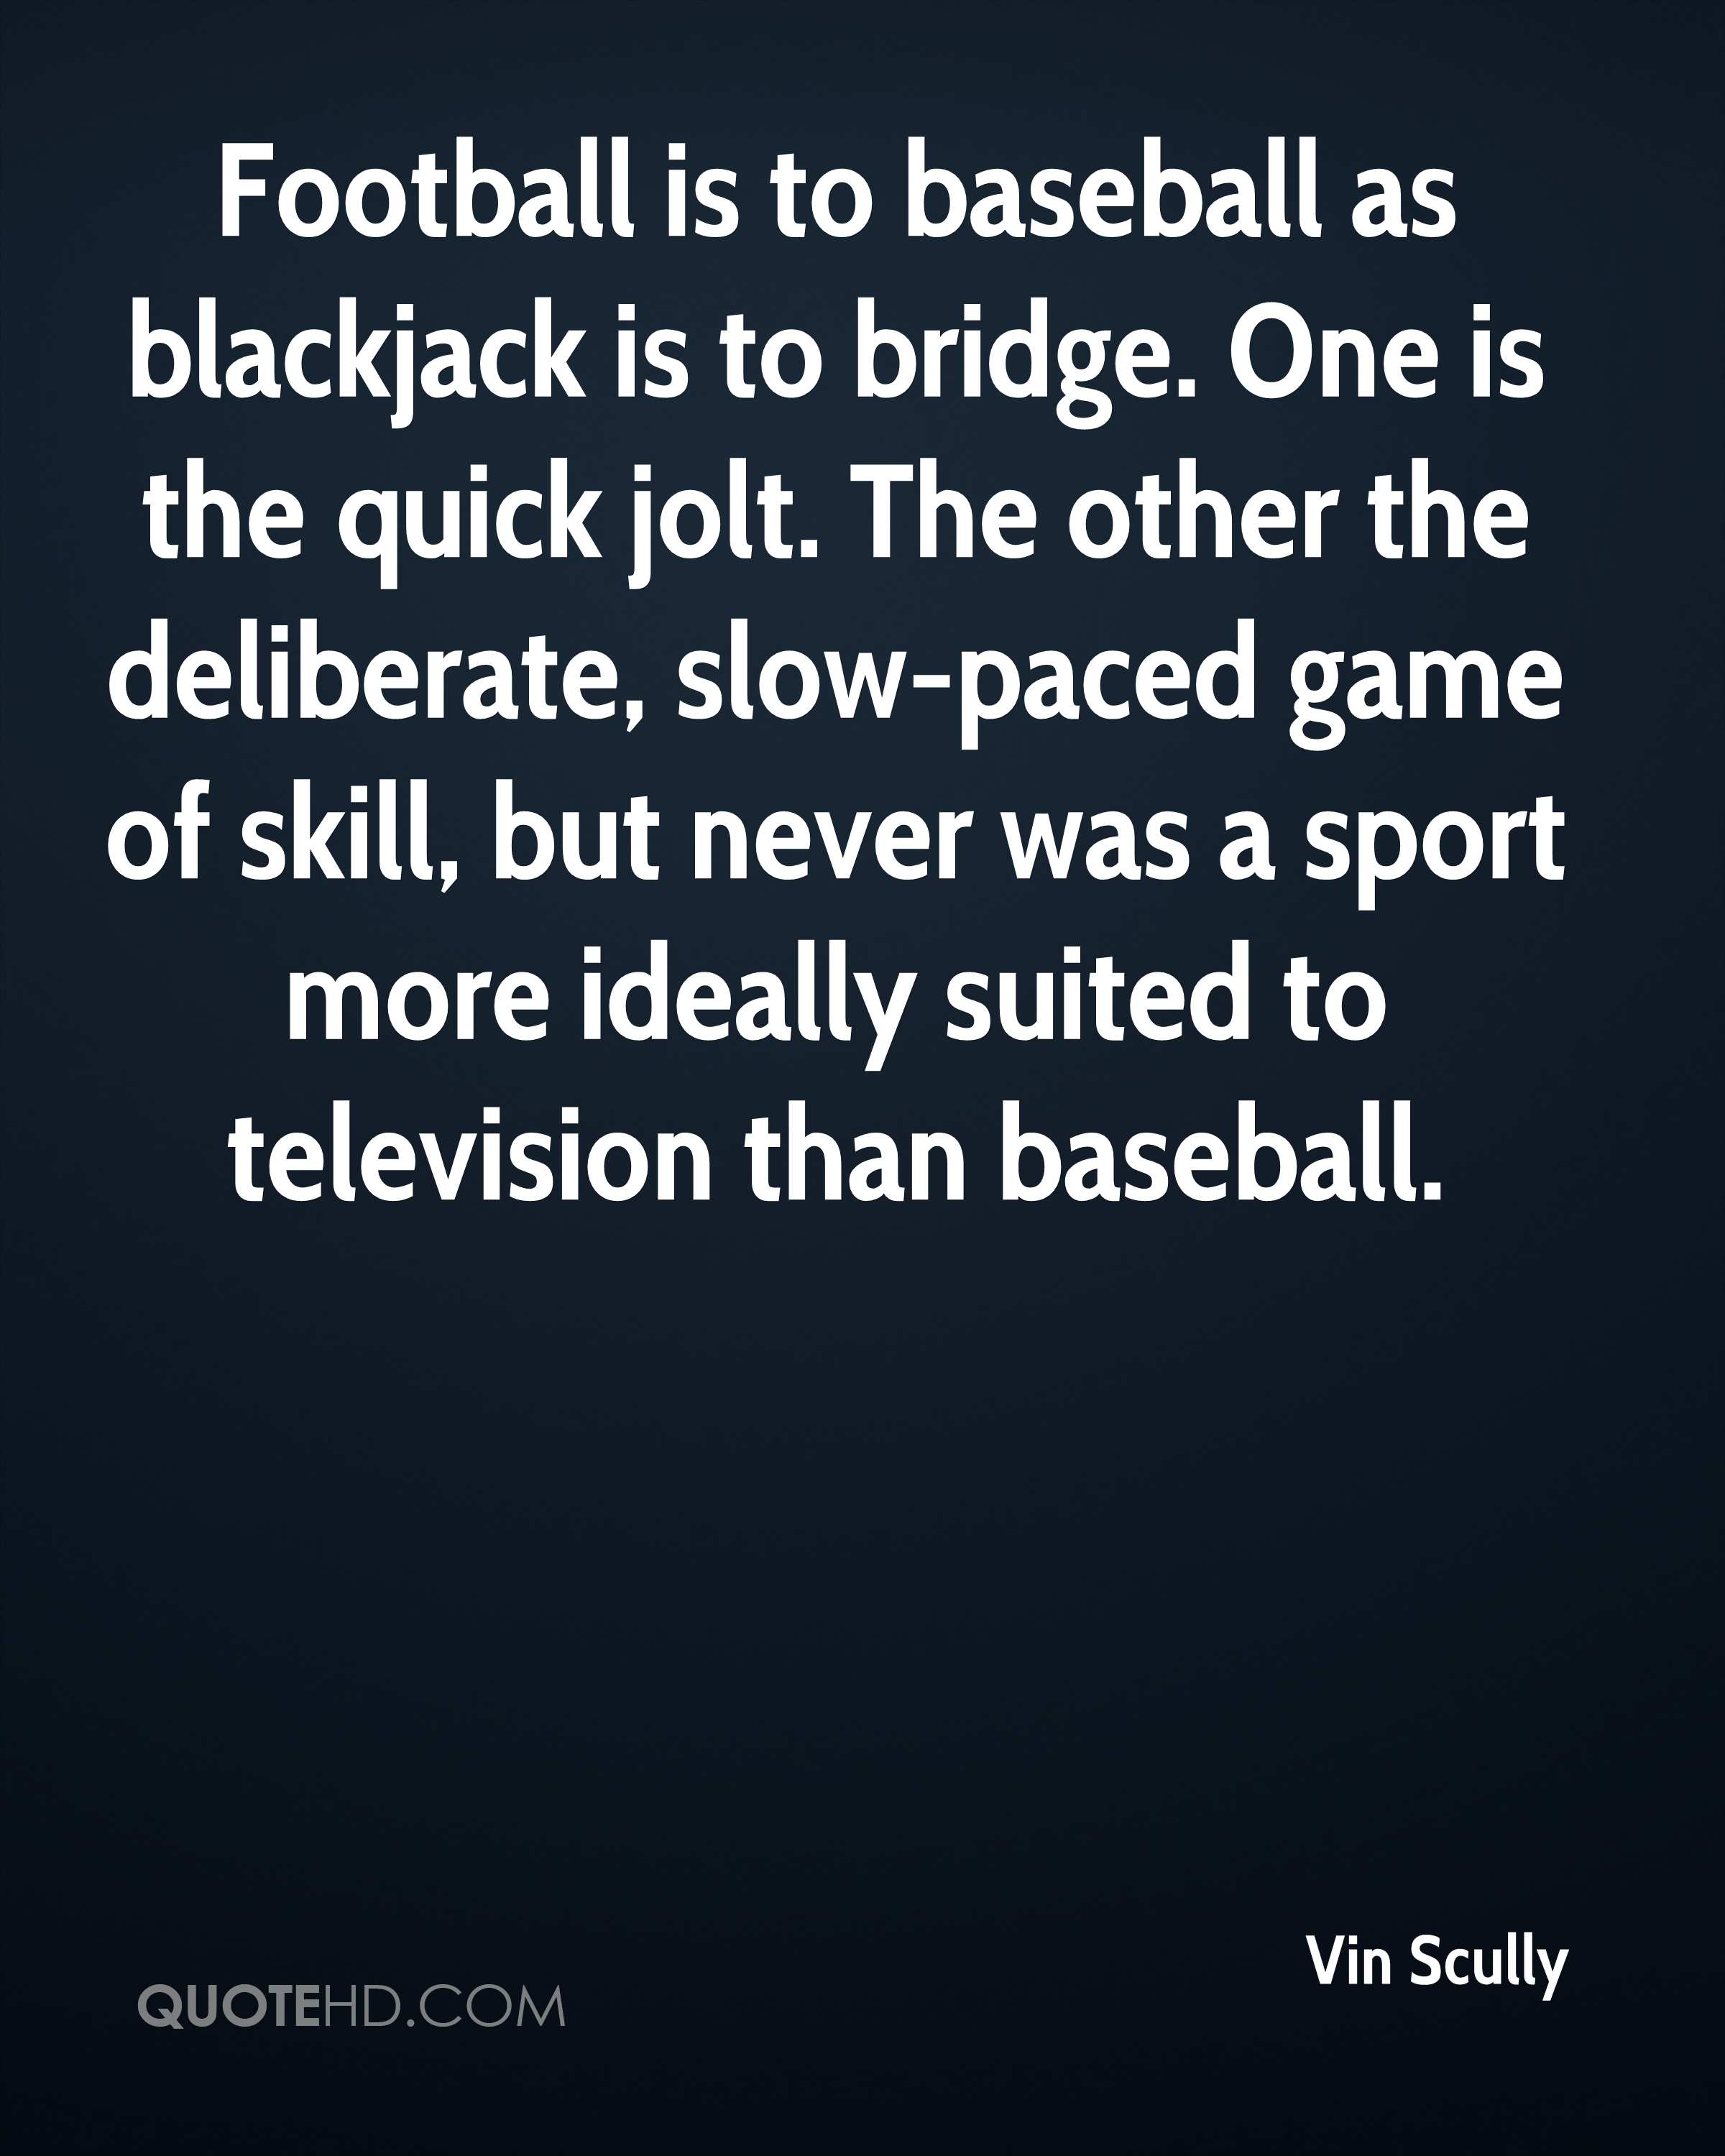 Football is to baseball as blackjack is to bridge. One is the quick jolt. The other the deliberate, slow-paced game of skill, but never was a sport more ideally suited to television than baseball.